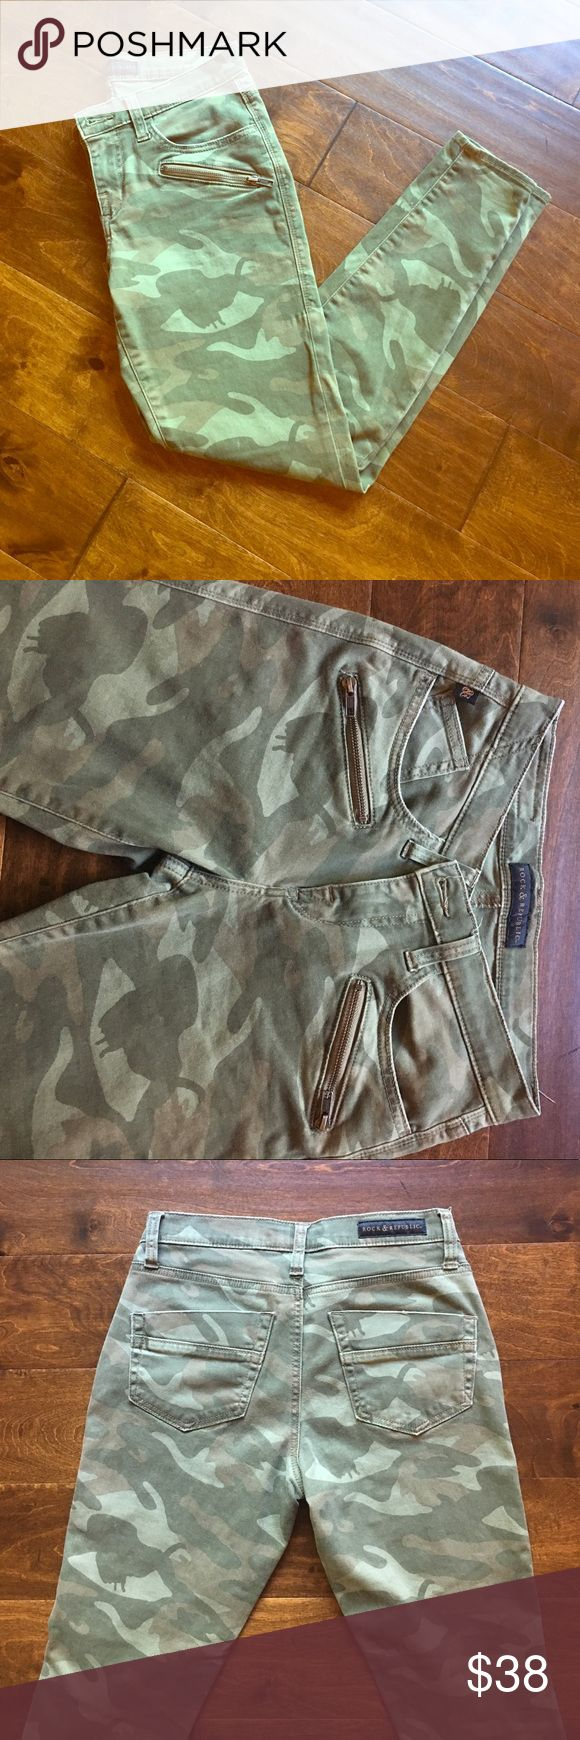 """Rock and Republic Cropped SkinnyCamo Jeans 4/6 Excellent condition Kashmiere style camo jean. Super cute zipper slash pockets under regular pockets. 27.5"""" inseam. Fit is very skinny for a 6, looser for a size 4. Rock & Republic Jeans Skinny"""